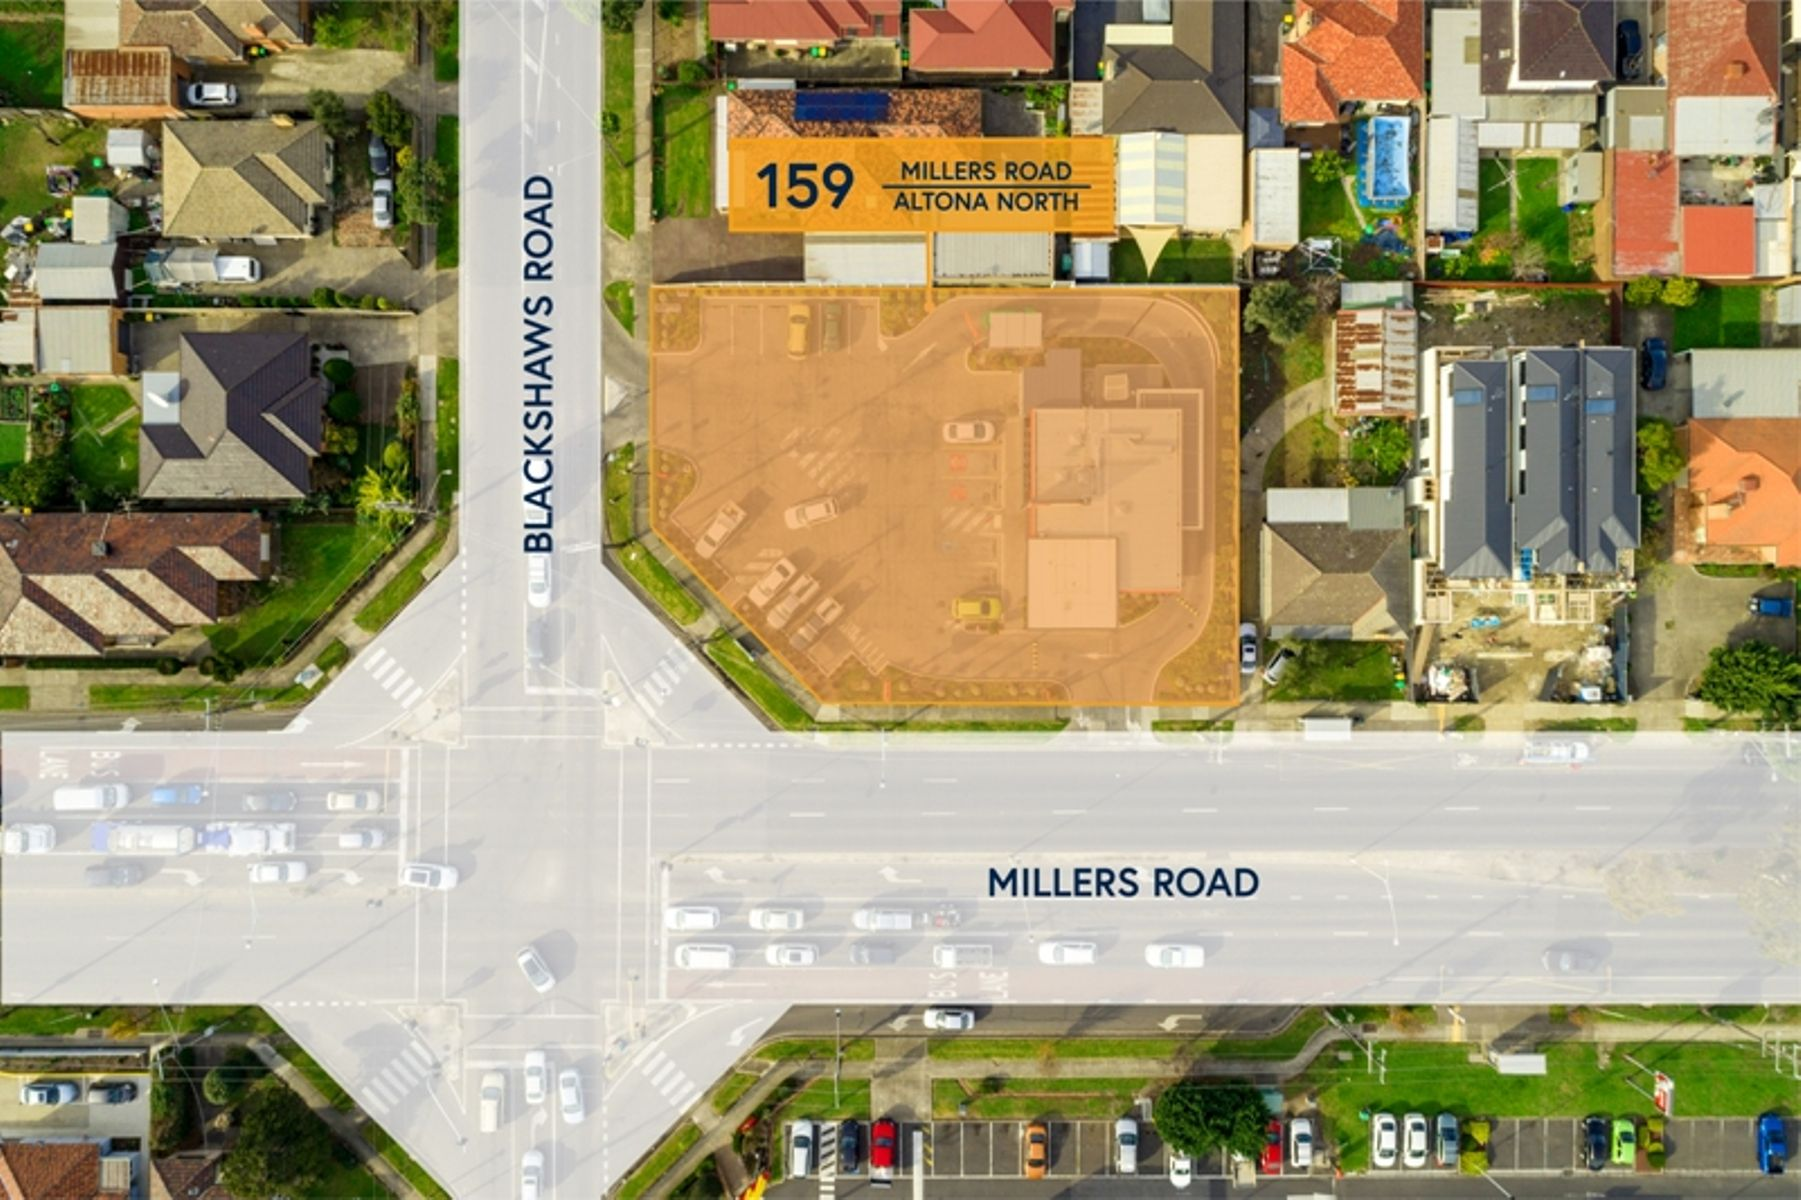 TES20339 581 Millers Rd Altona North   Overlay3 PROOF 2